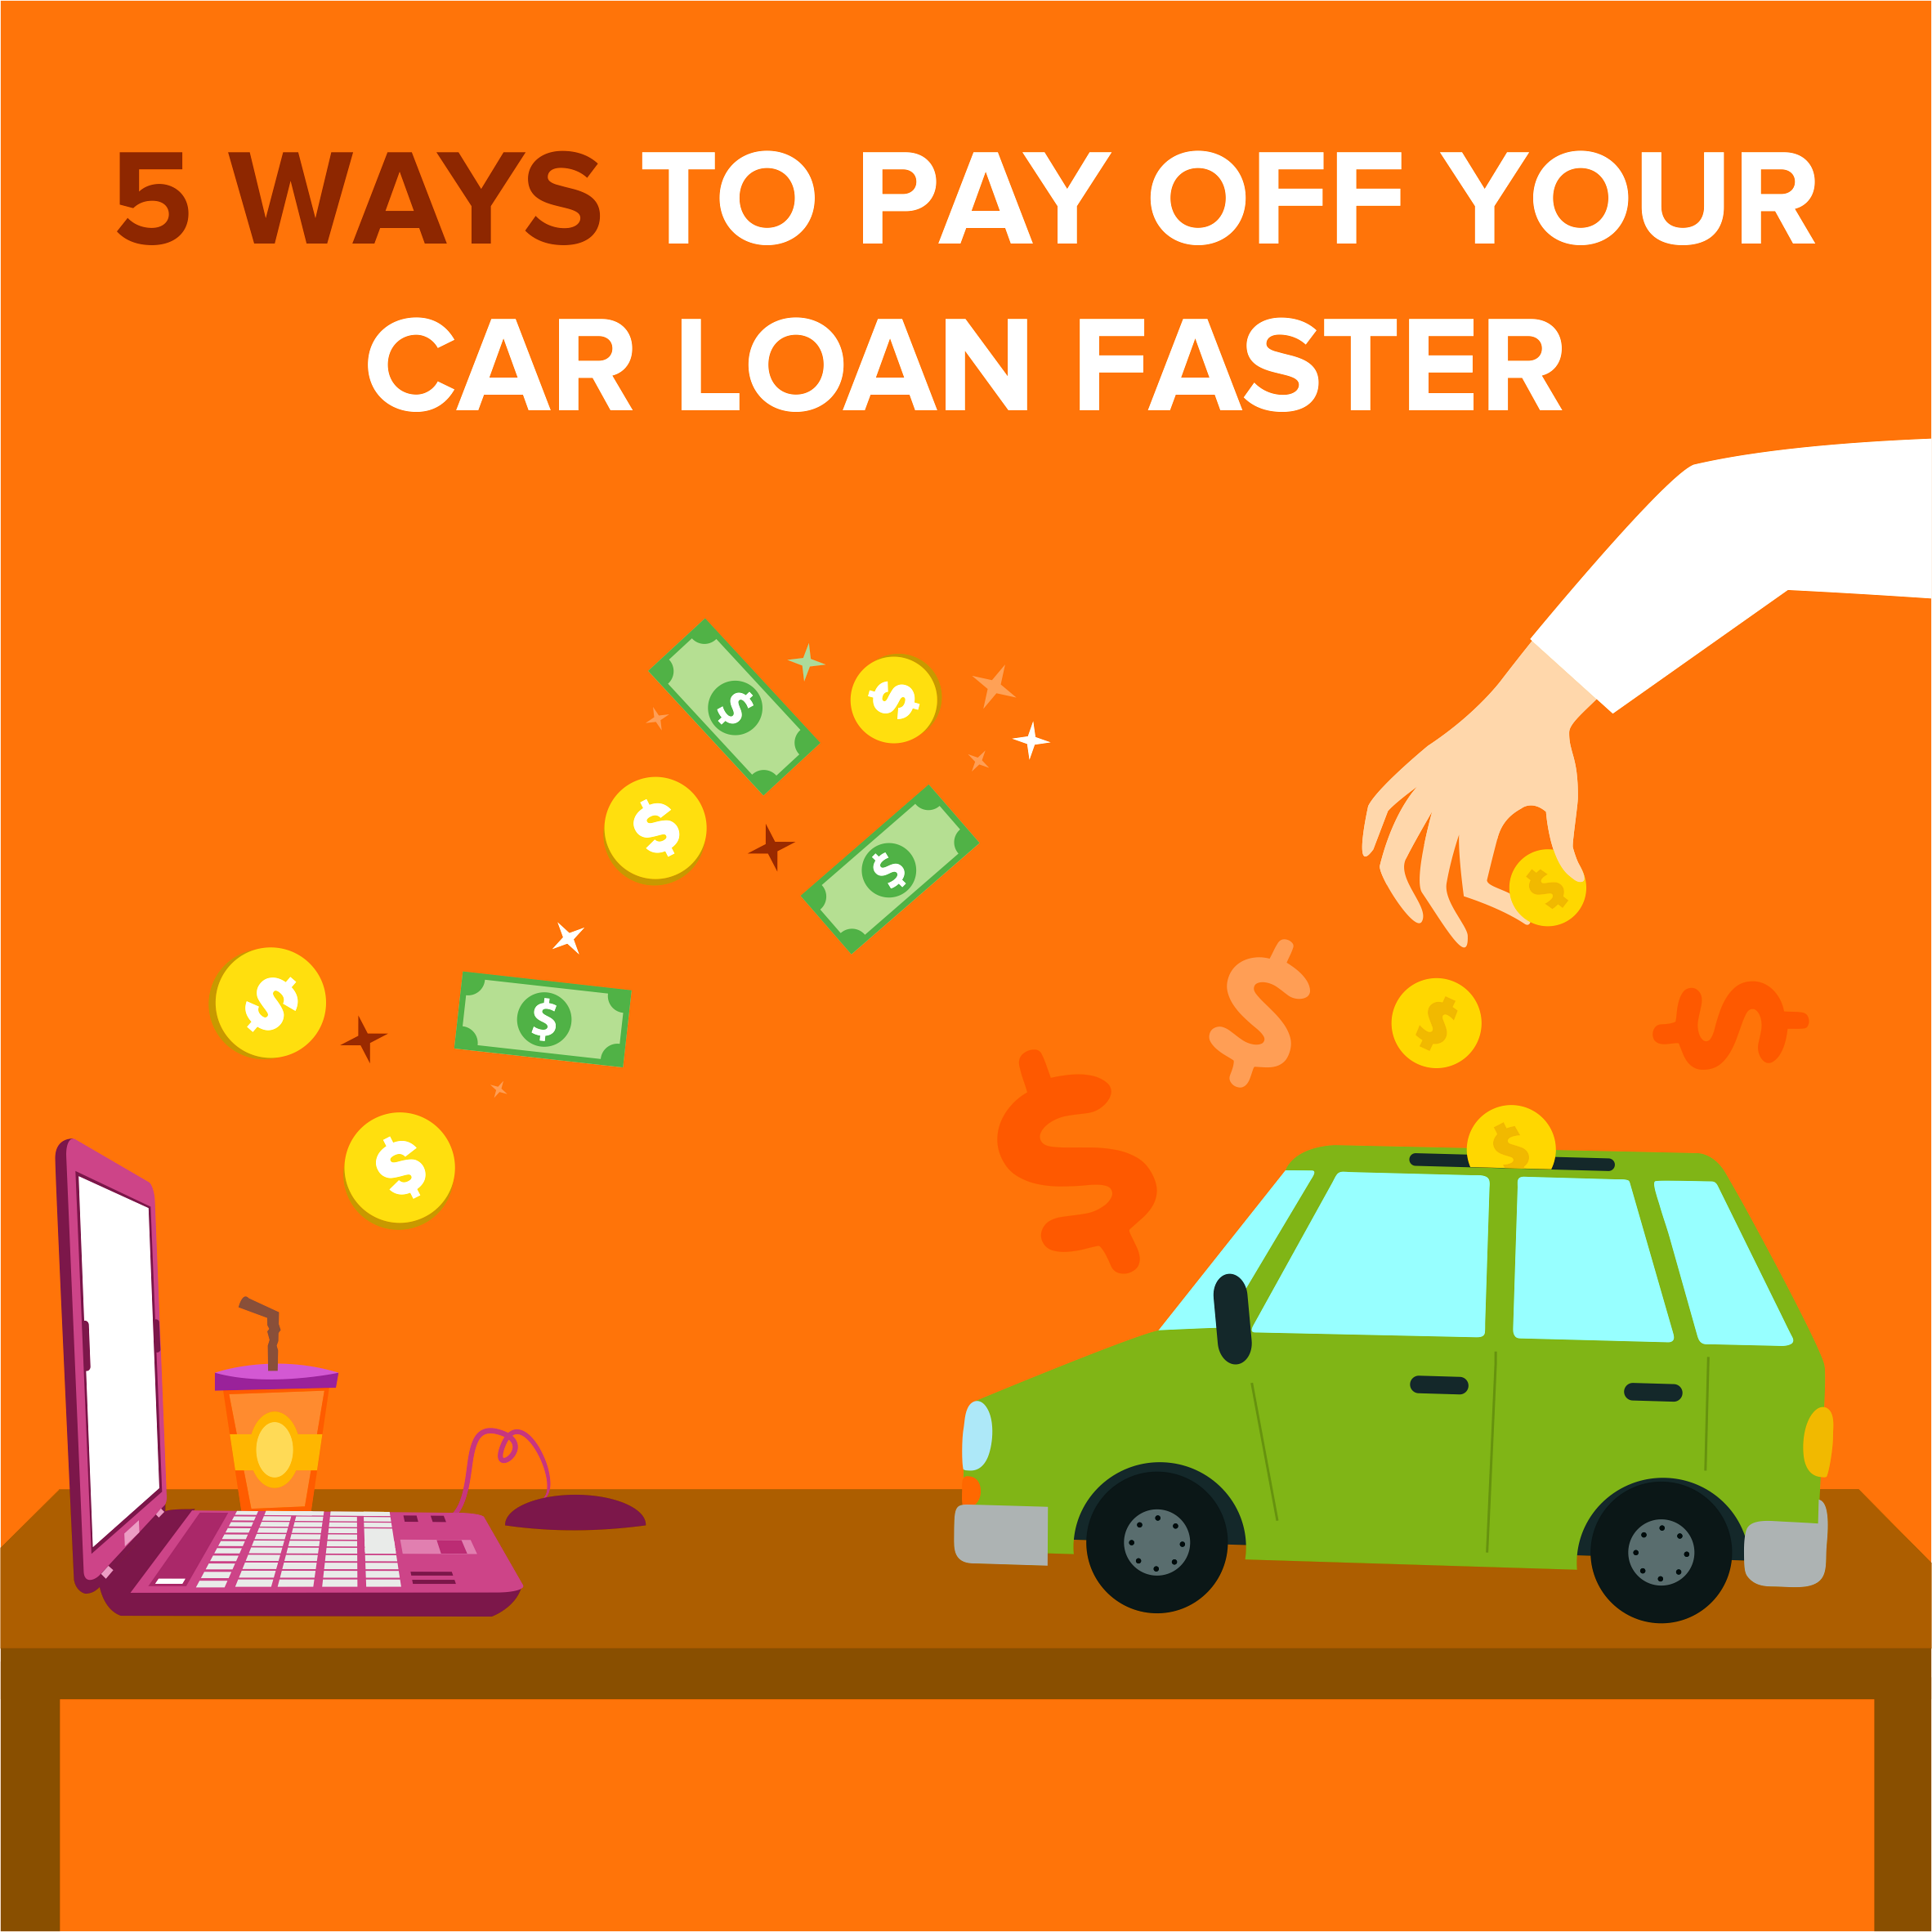 5 Ways to Pay Your Off Your Car Loan Faster